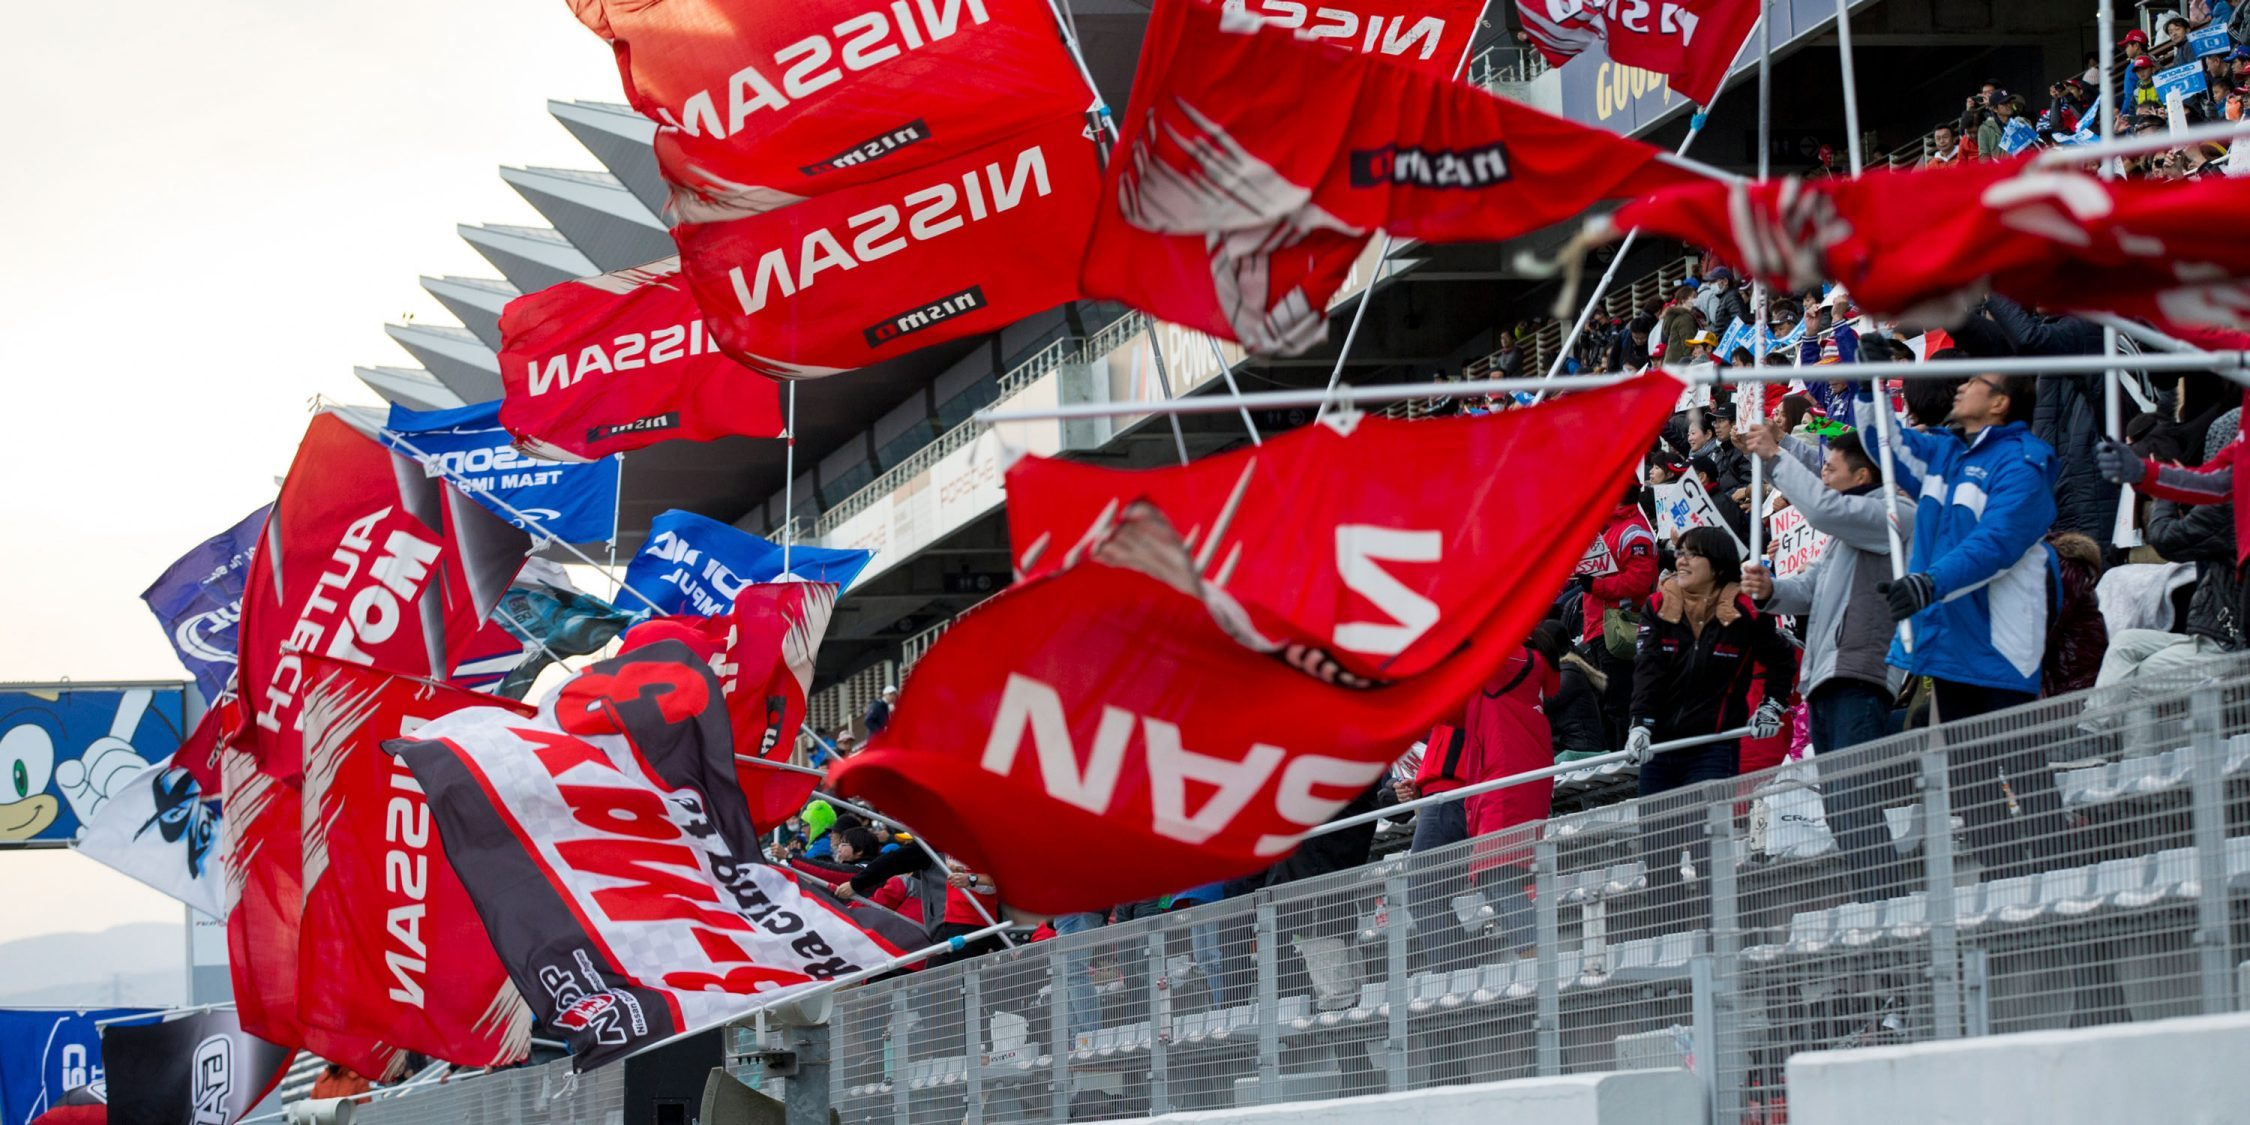 Nissan flags waving from the stands